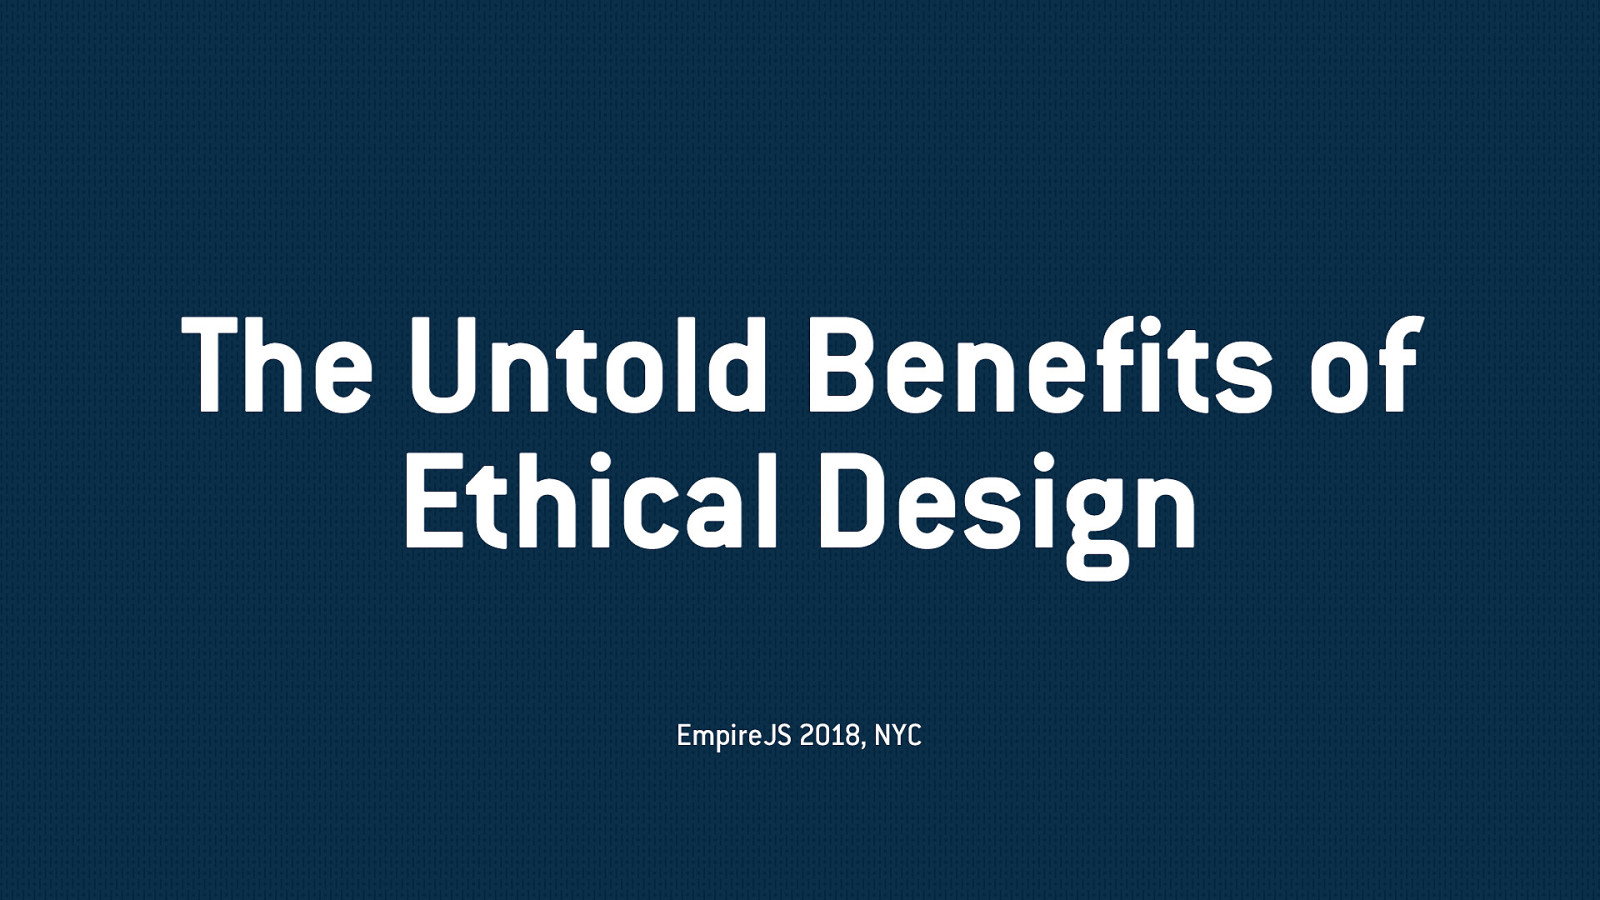 The Untold Benefits of Ethical Design